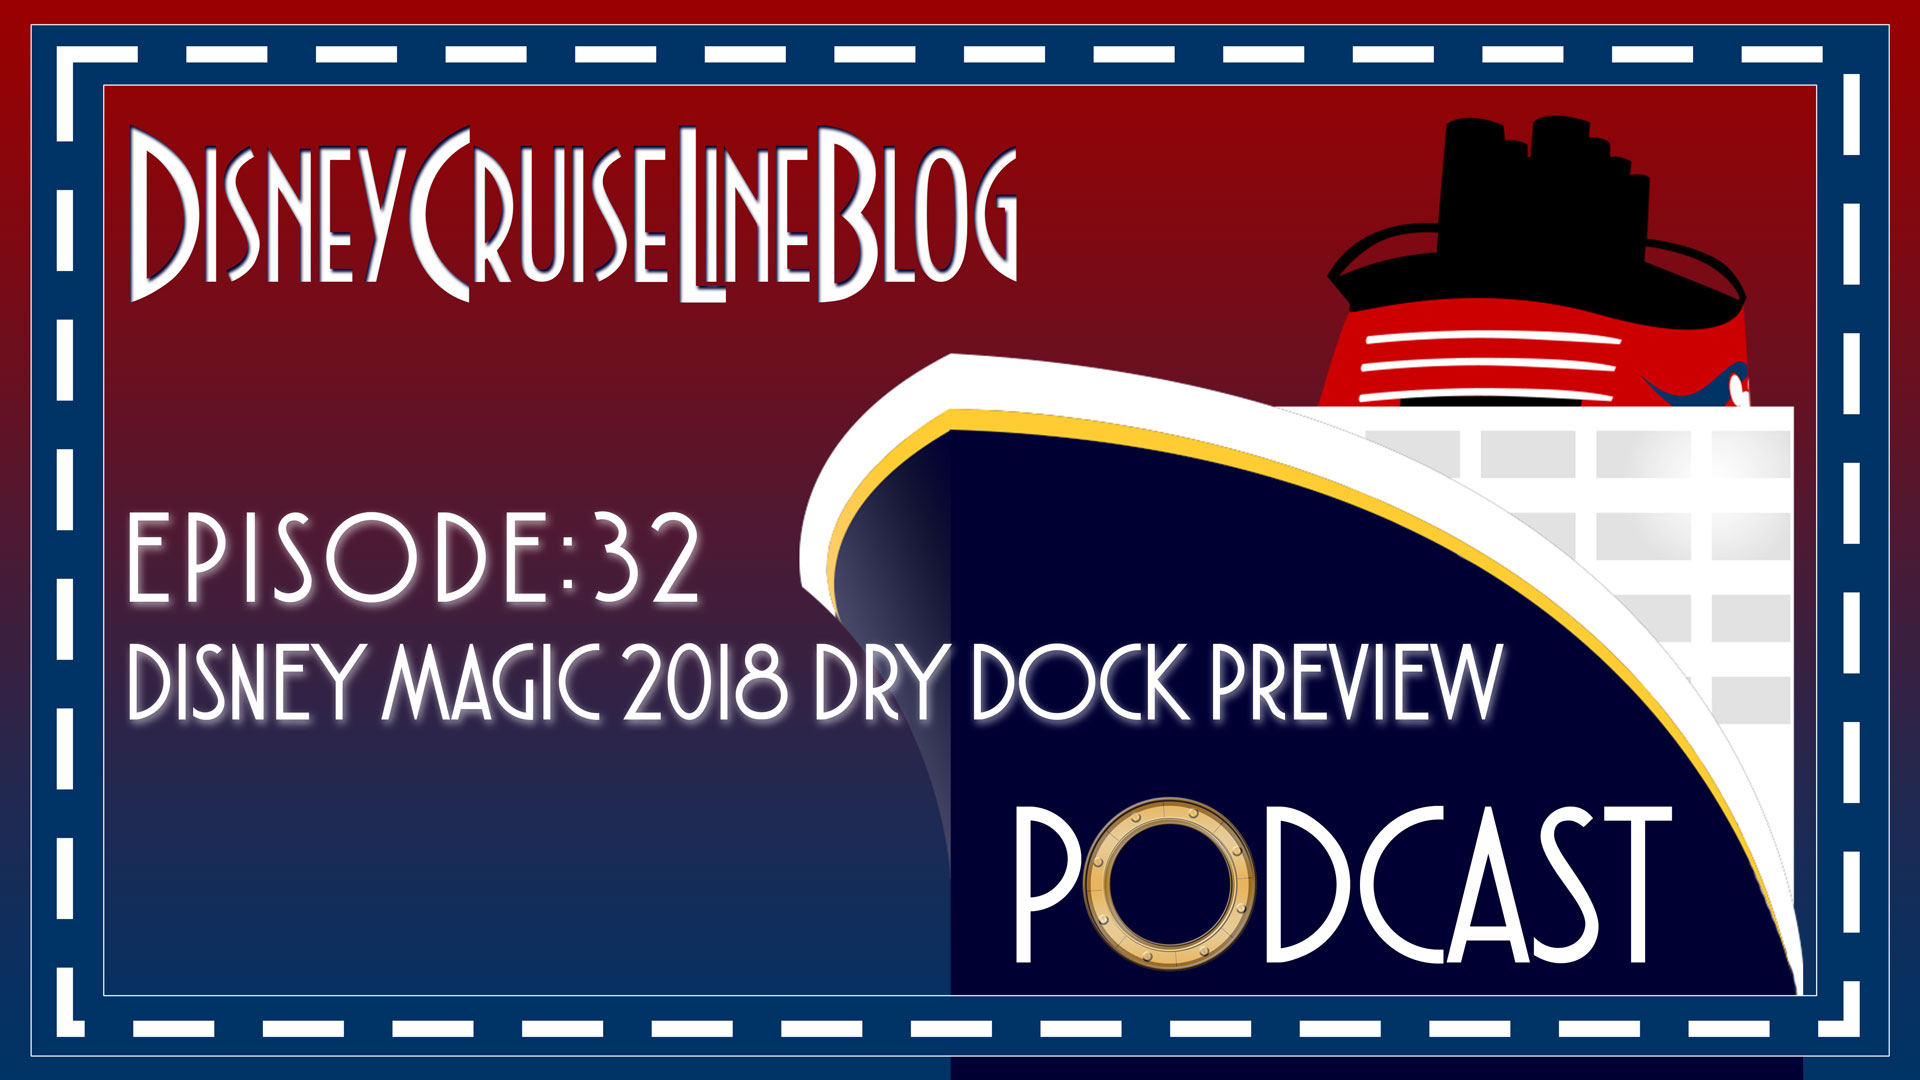 DCL Blog Podcast Episode 32 2018 Magic Dry Dock Preview